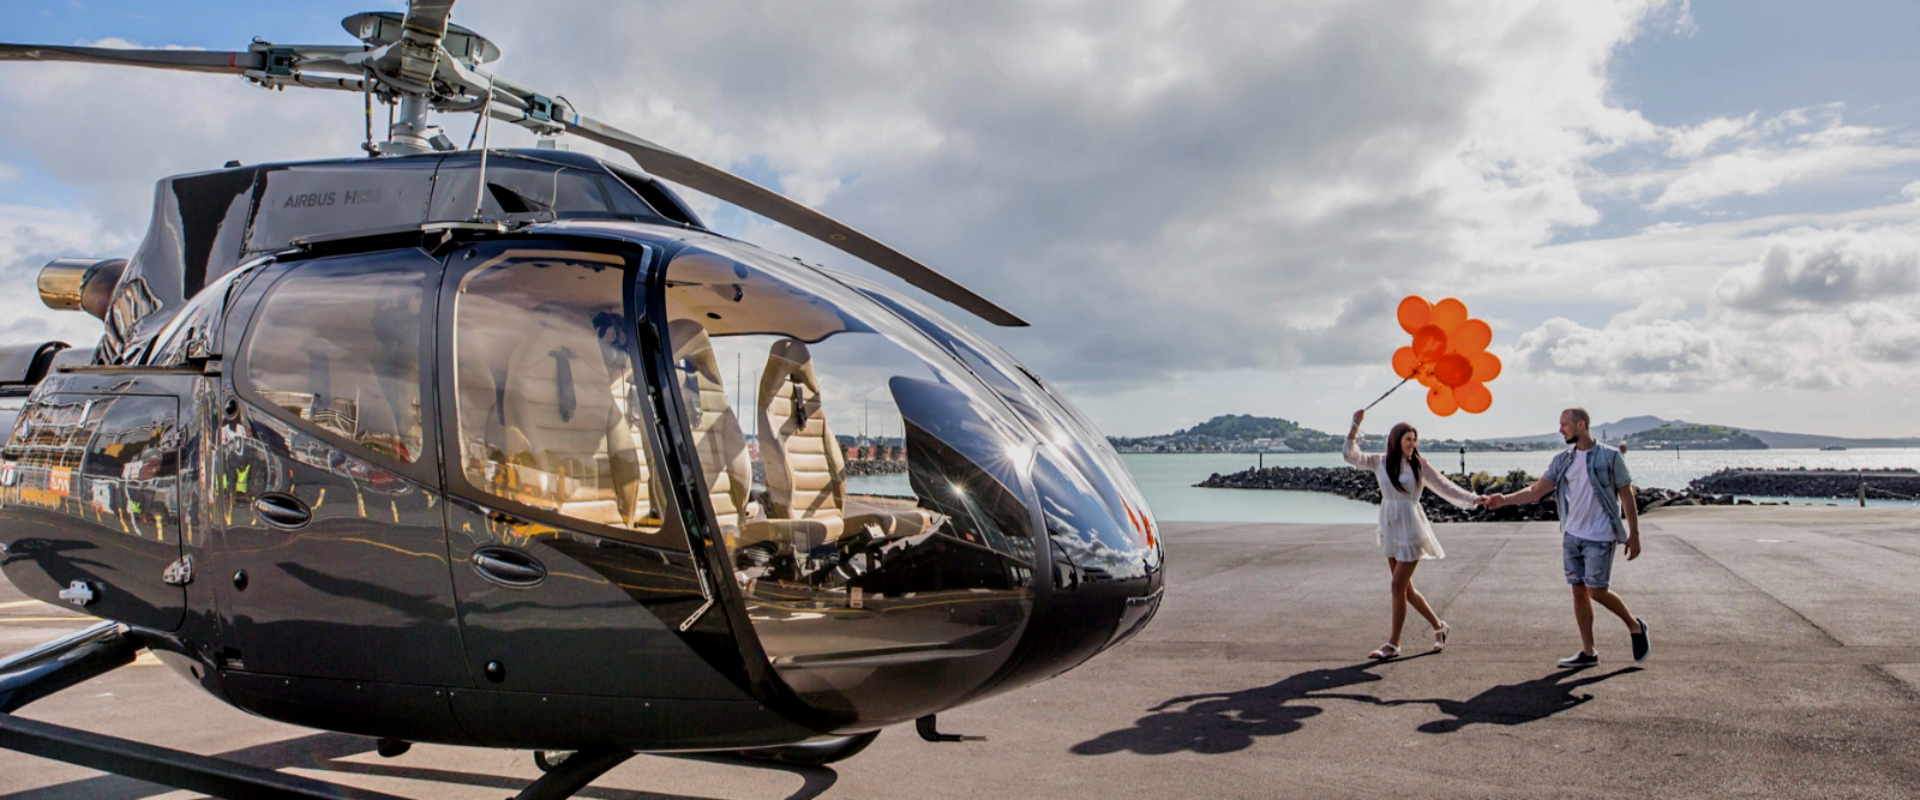 Helicopter Tours & Rides Auckland   Mechanics Bay & Airport